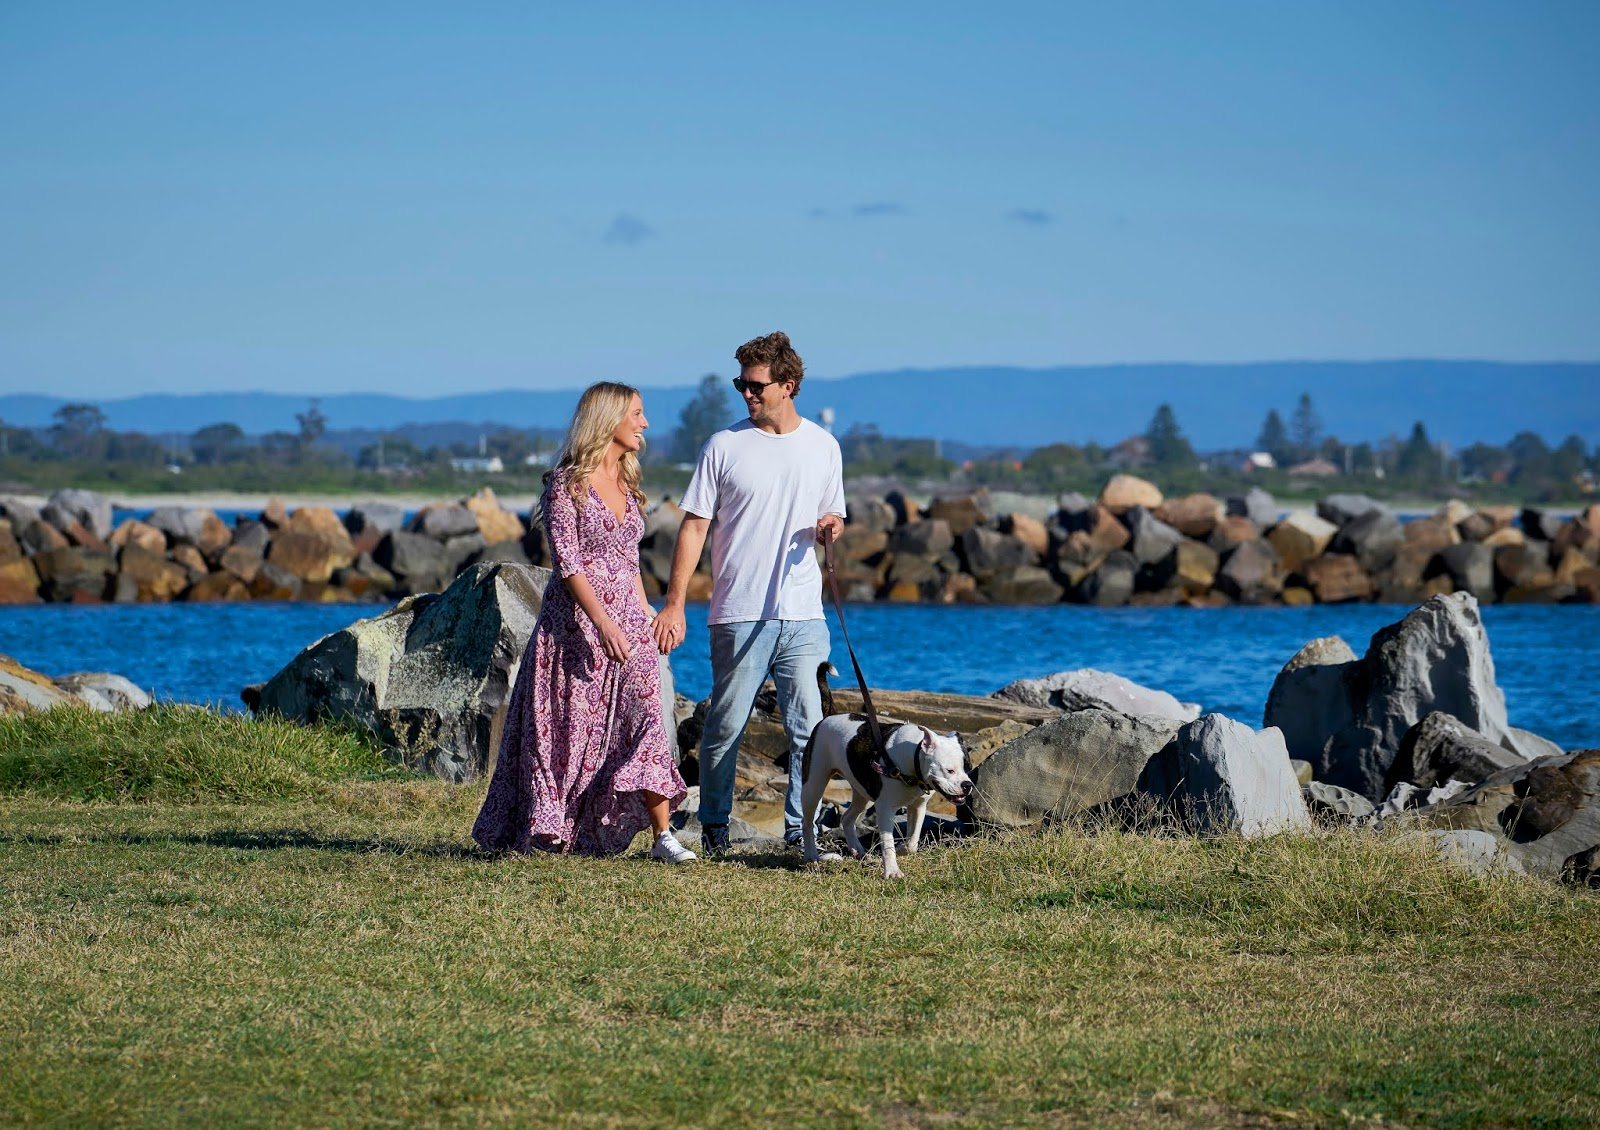 A young woman and man walk along Lake Macquarie's shore walking their dog on a leash